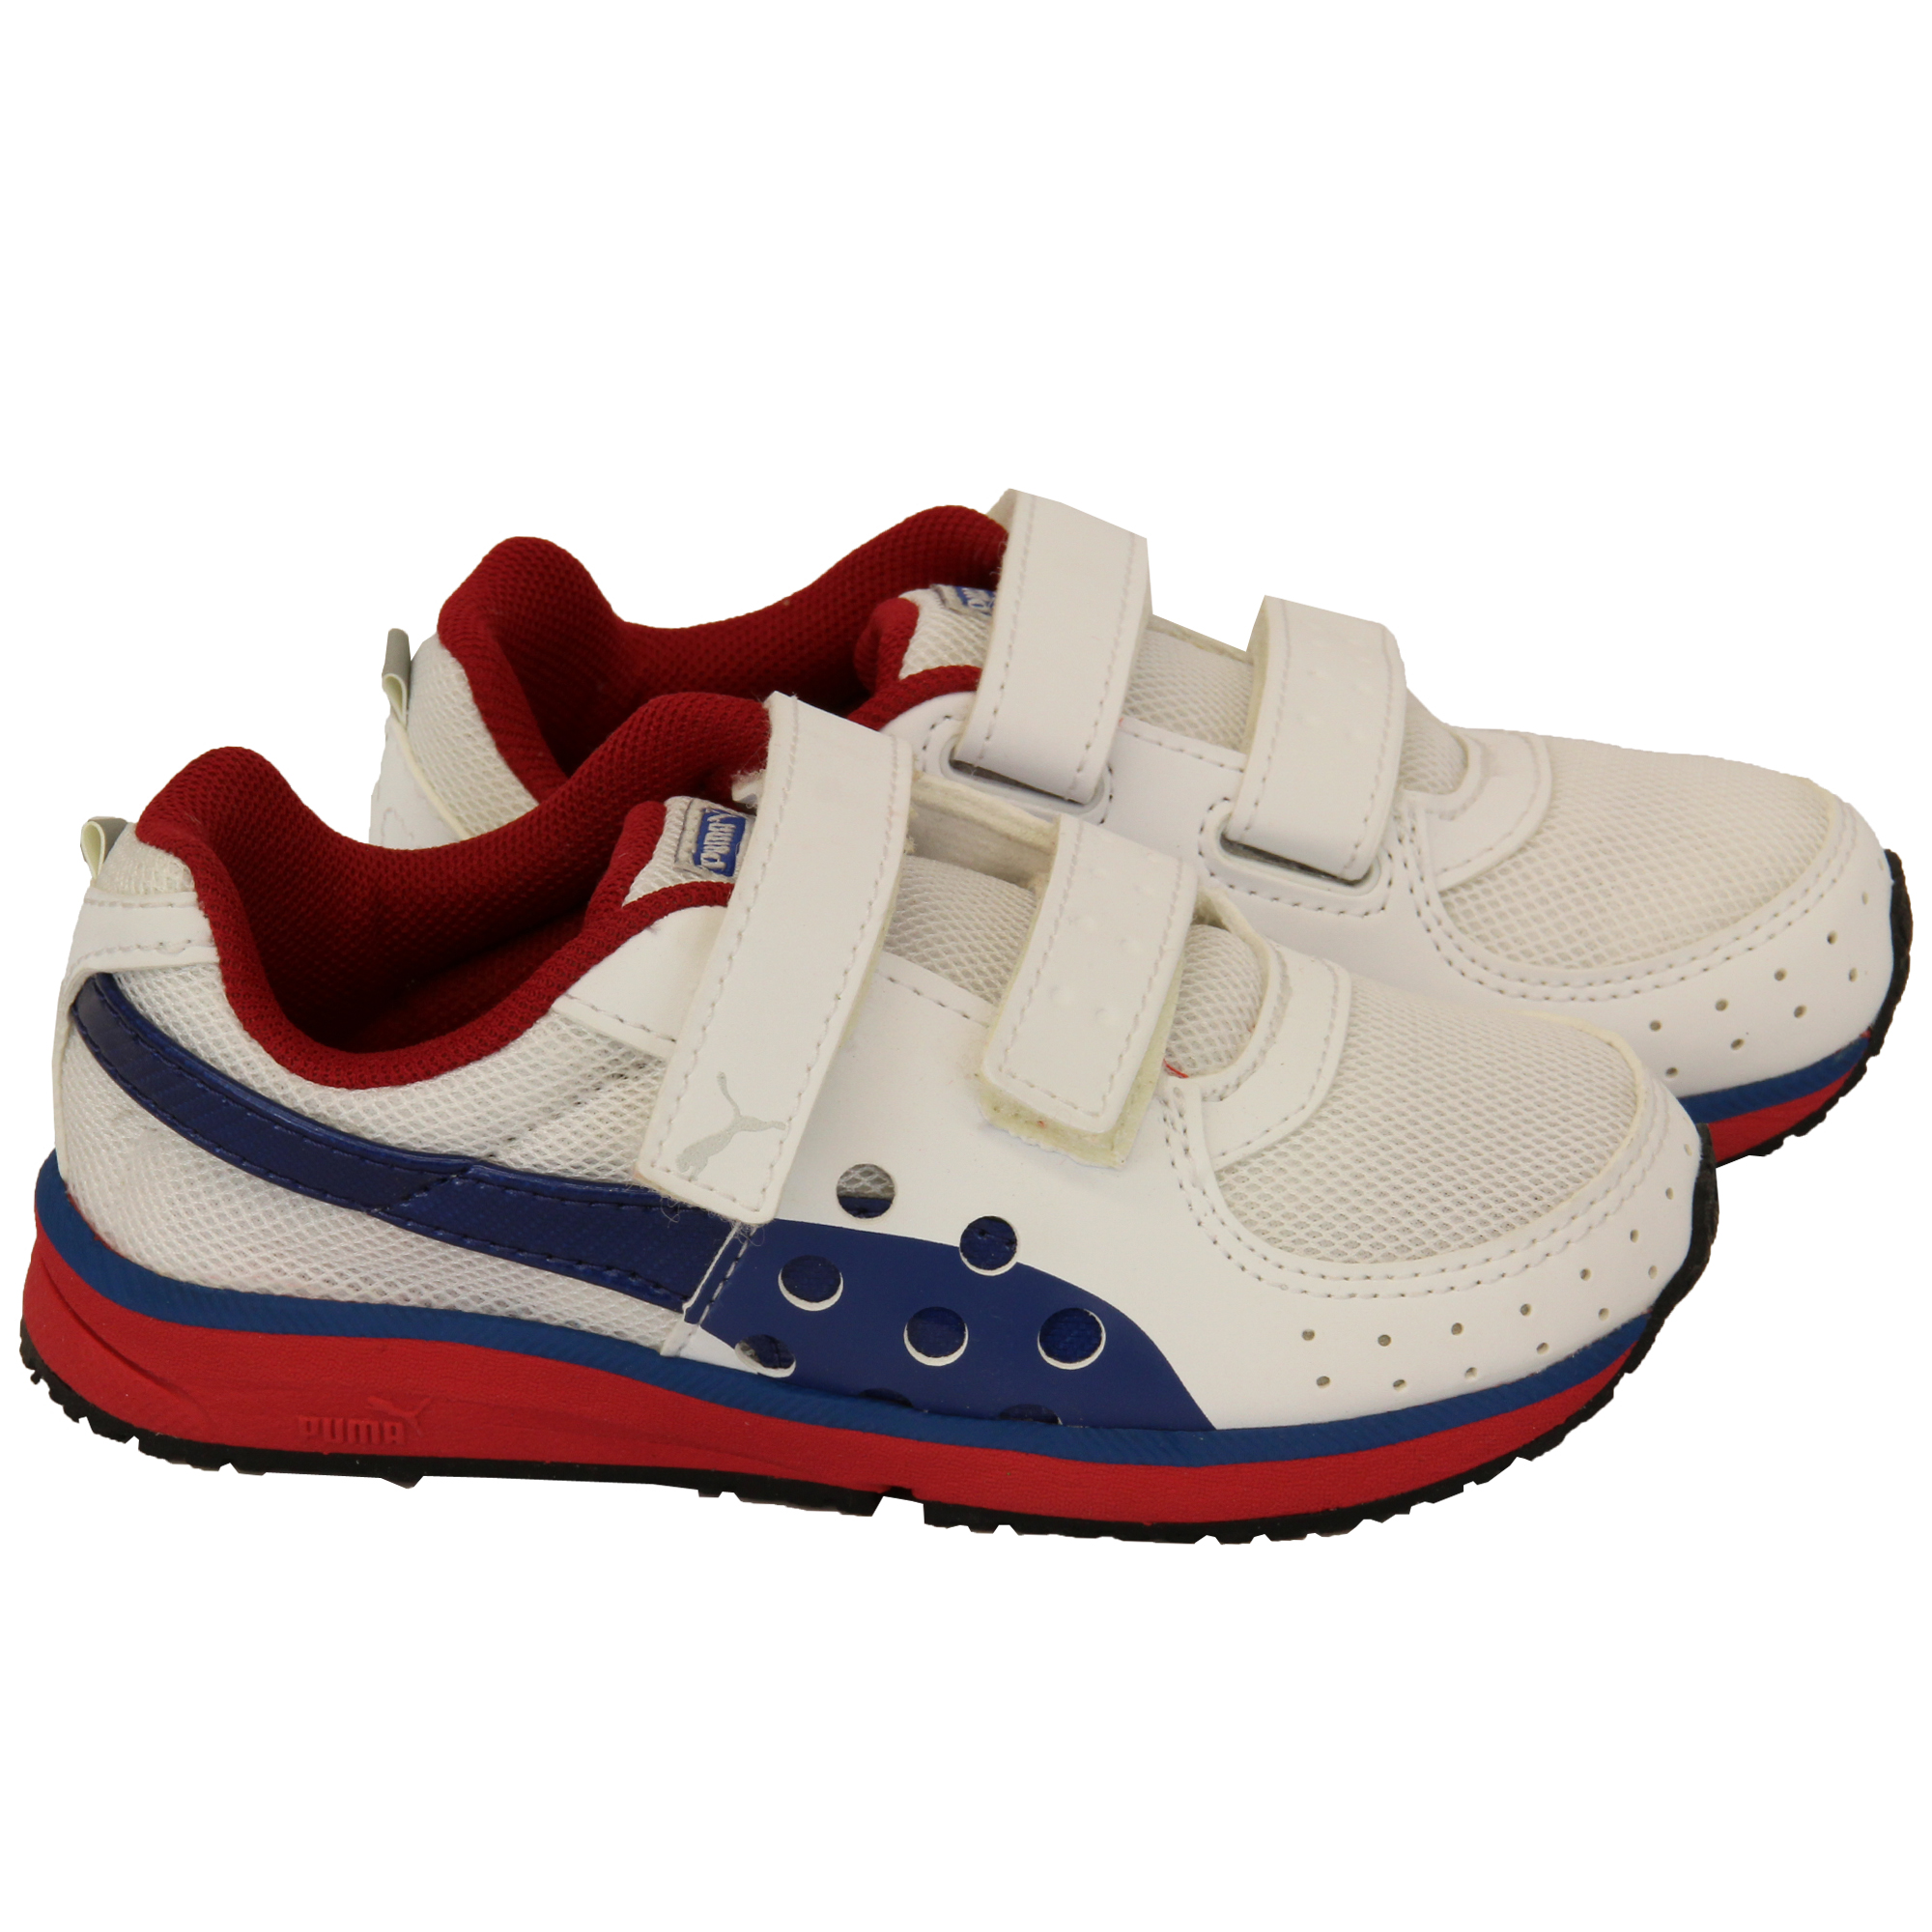 Classic Mens Shoes Fashion Sneakers 28